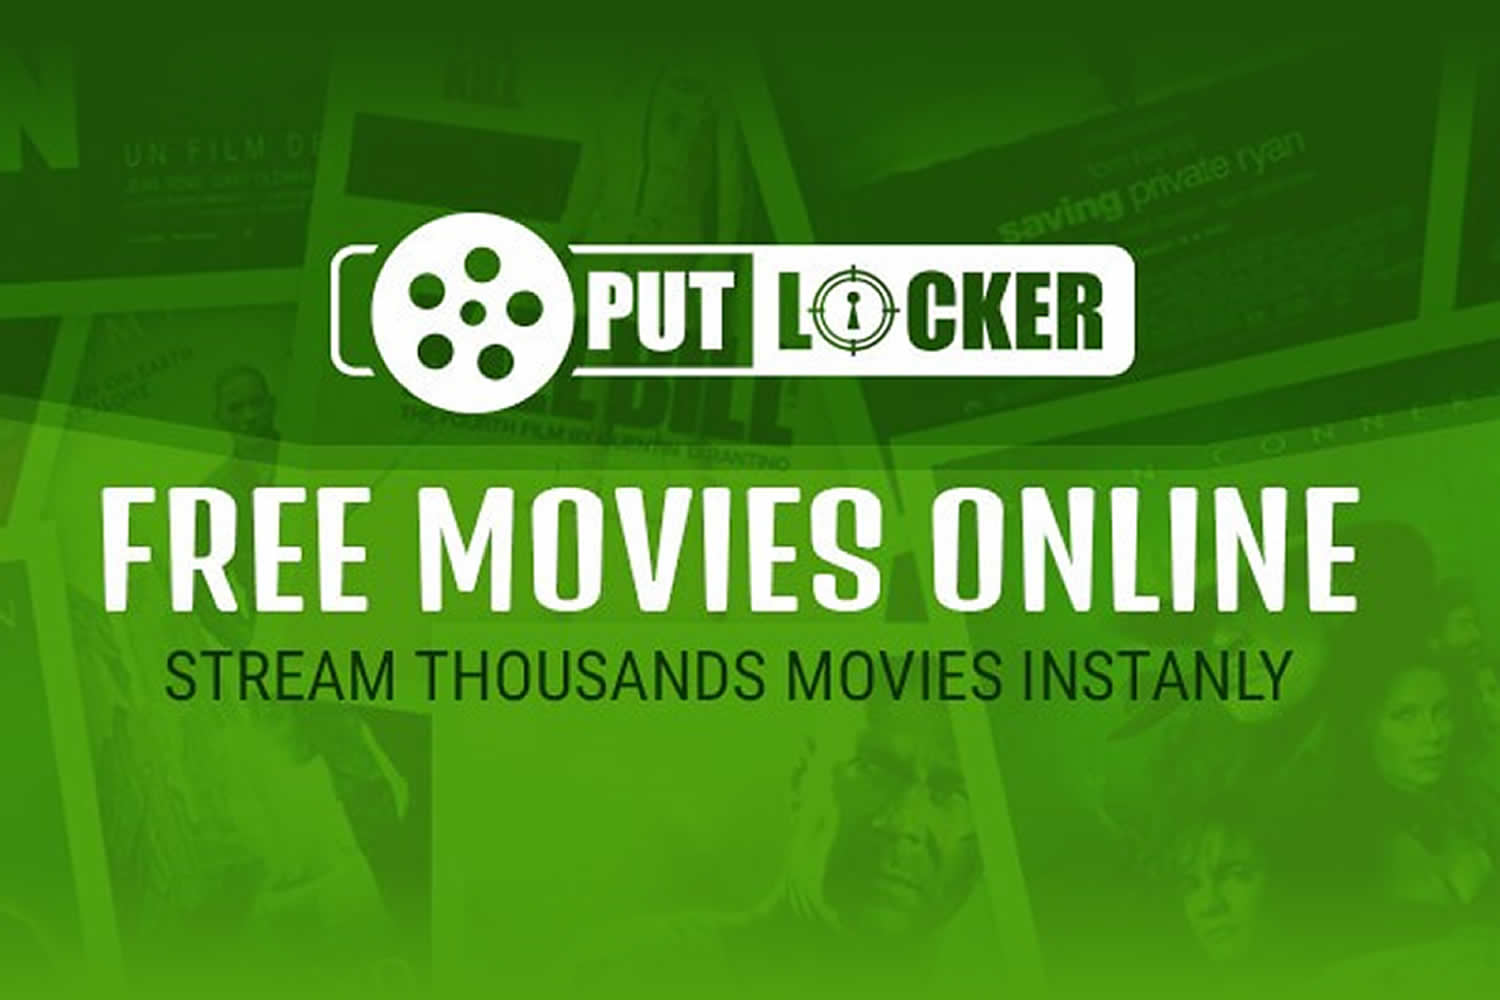 Watch The Biggest Punch Putlocker Movies